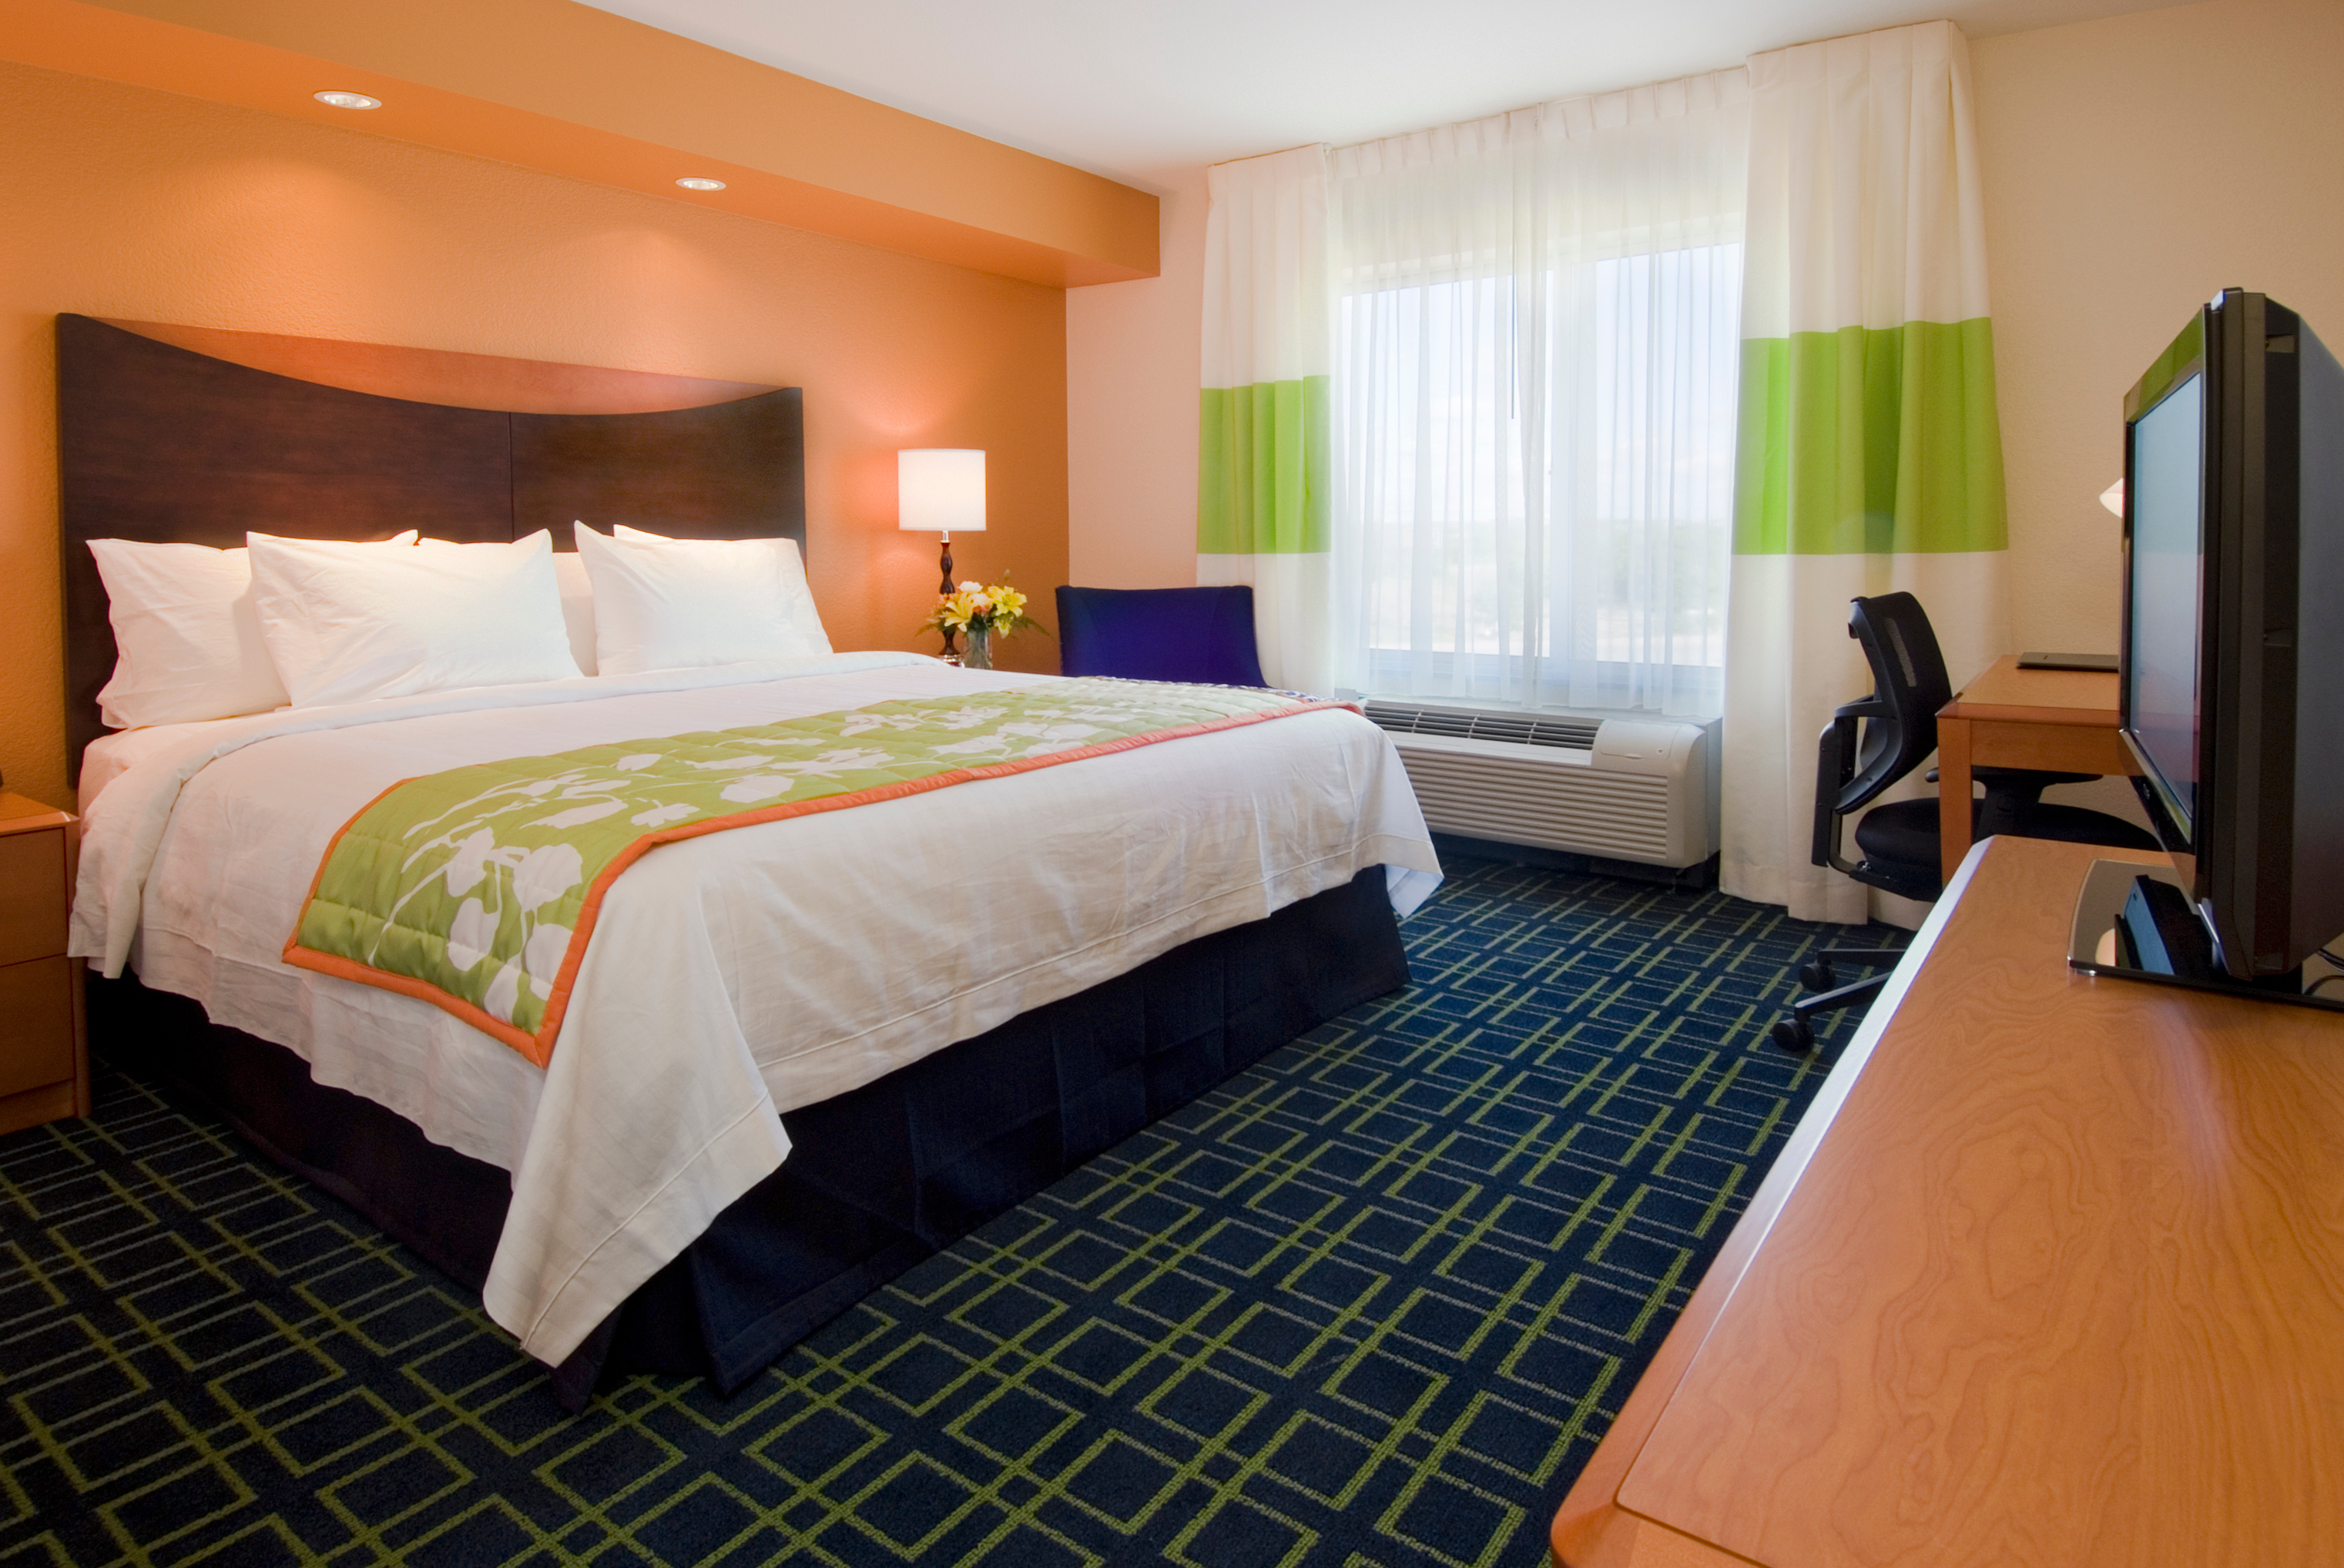 Fairfield Inn & Suites by Marriott Austin North/Parmer Lane image 2